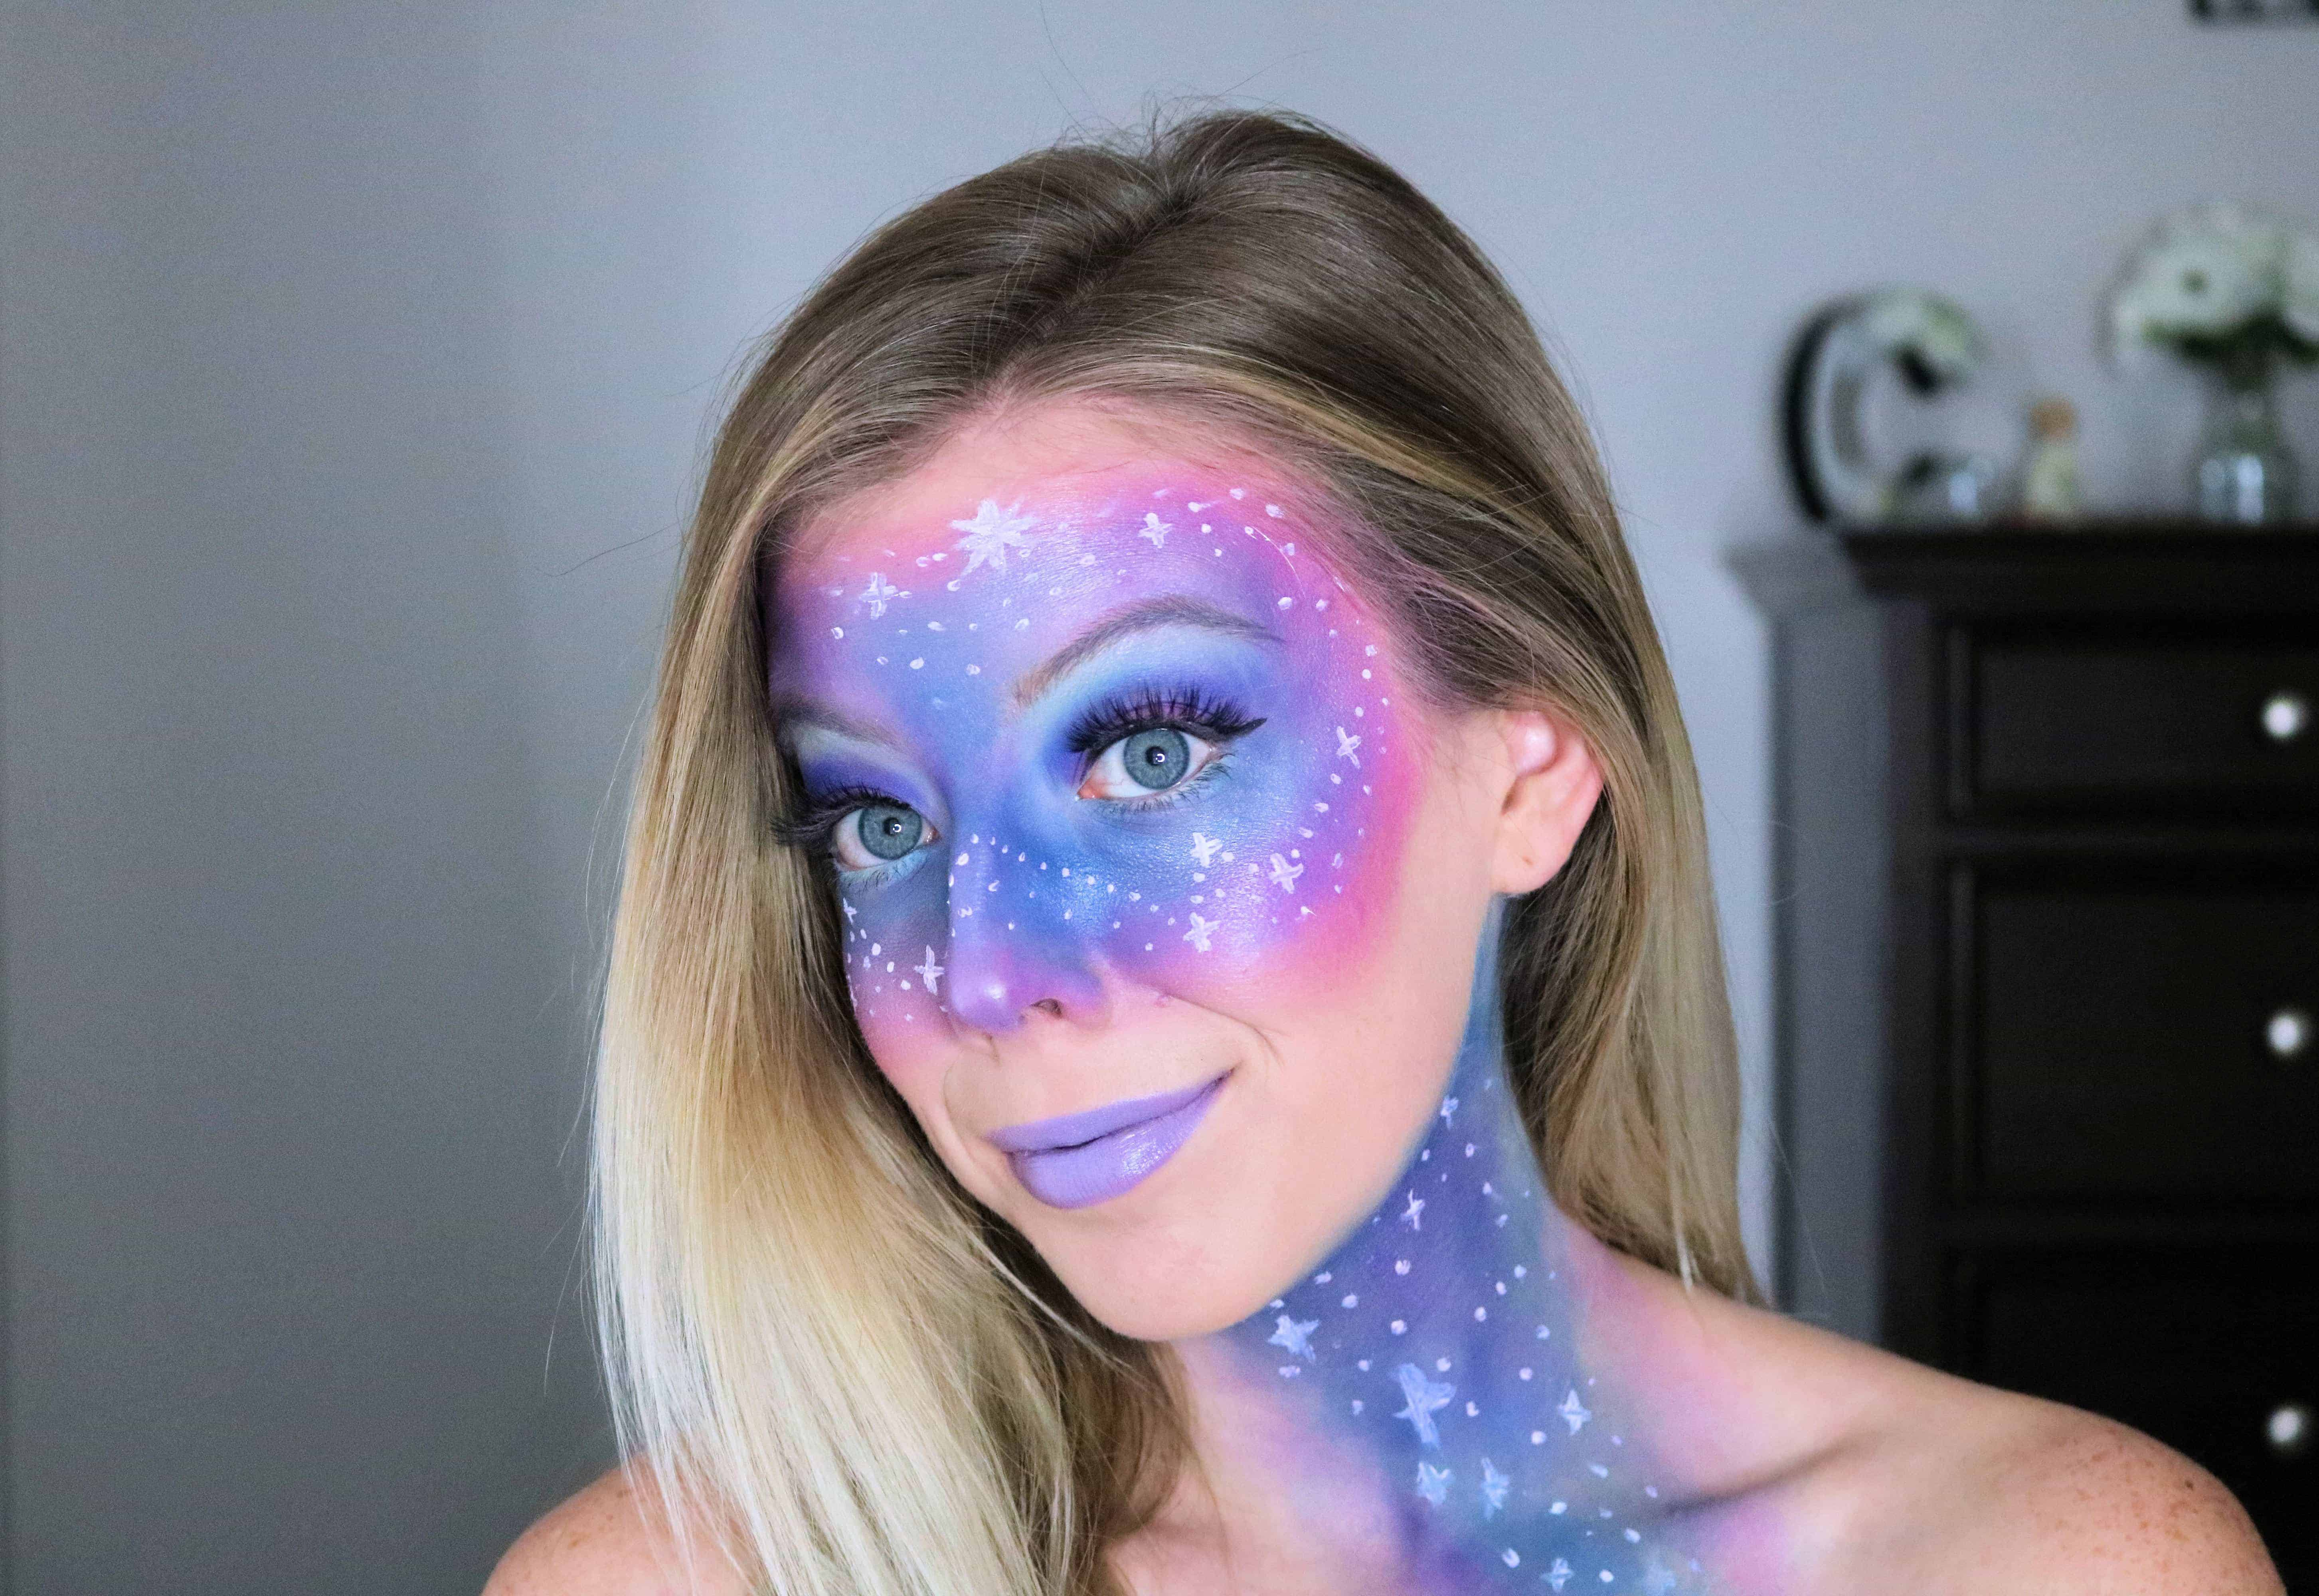 Ready to rock out your inner galaxy space princess for Halloween? Then check out my easy galaxy makeup tutorial that's super pretty and uses everyday makeup products! #galaxymakeup #halloweenmakeup #halloween #makeuptutorial